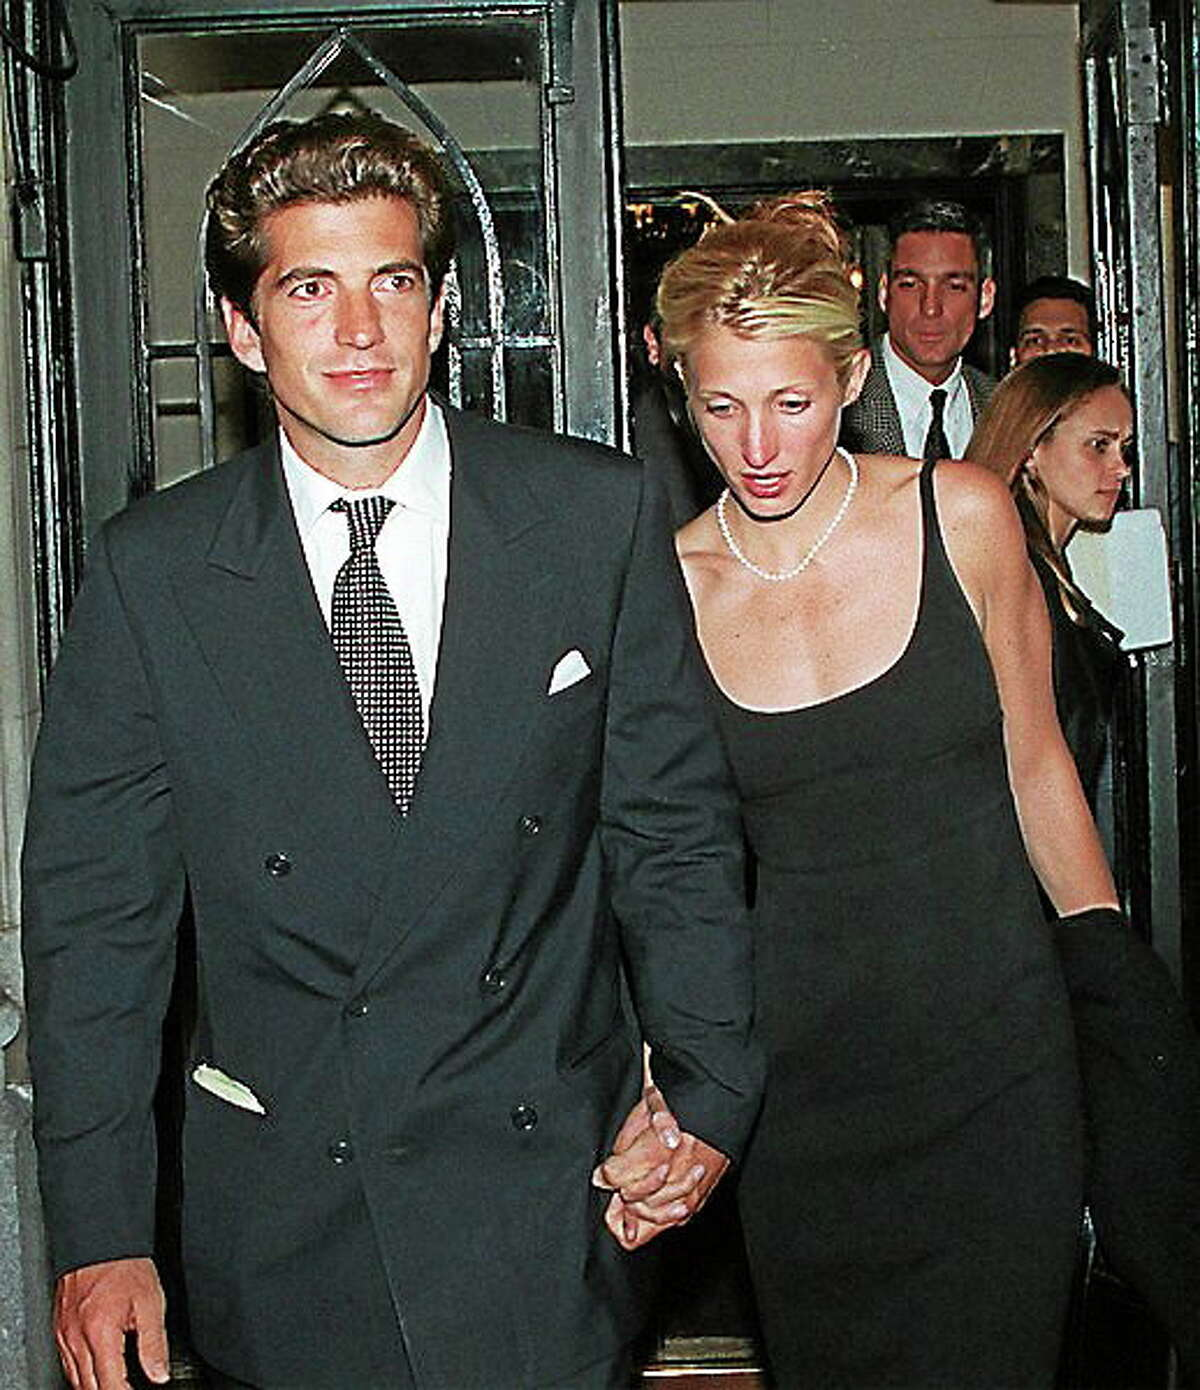 John F. Kennedy Jr. and his new bride Carolyn Bessette-Kennedy walk out hand-in-hand from a party and Kennedy family gathering in New York late Thursday night, Oct. 10, 1996.